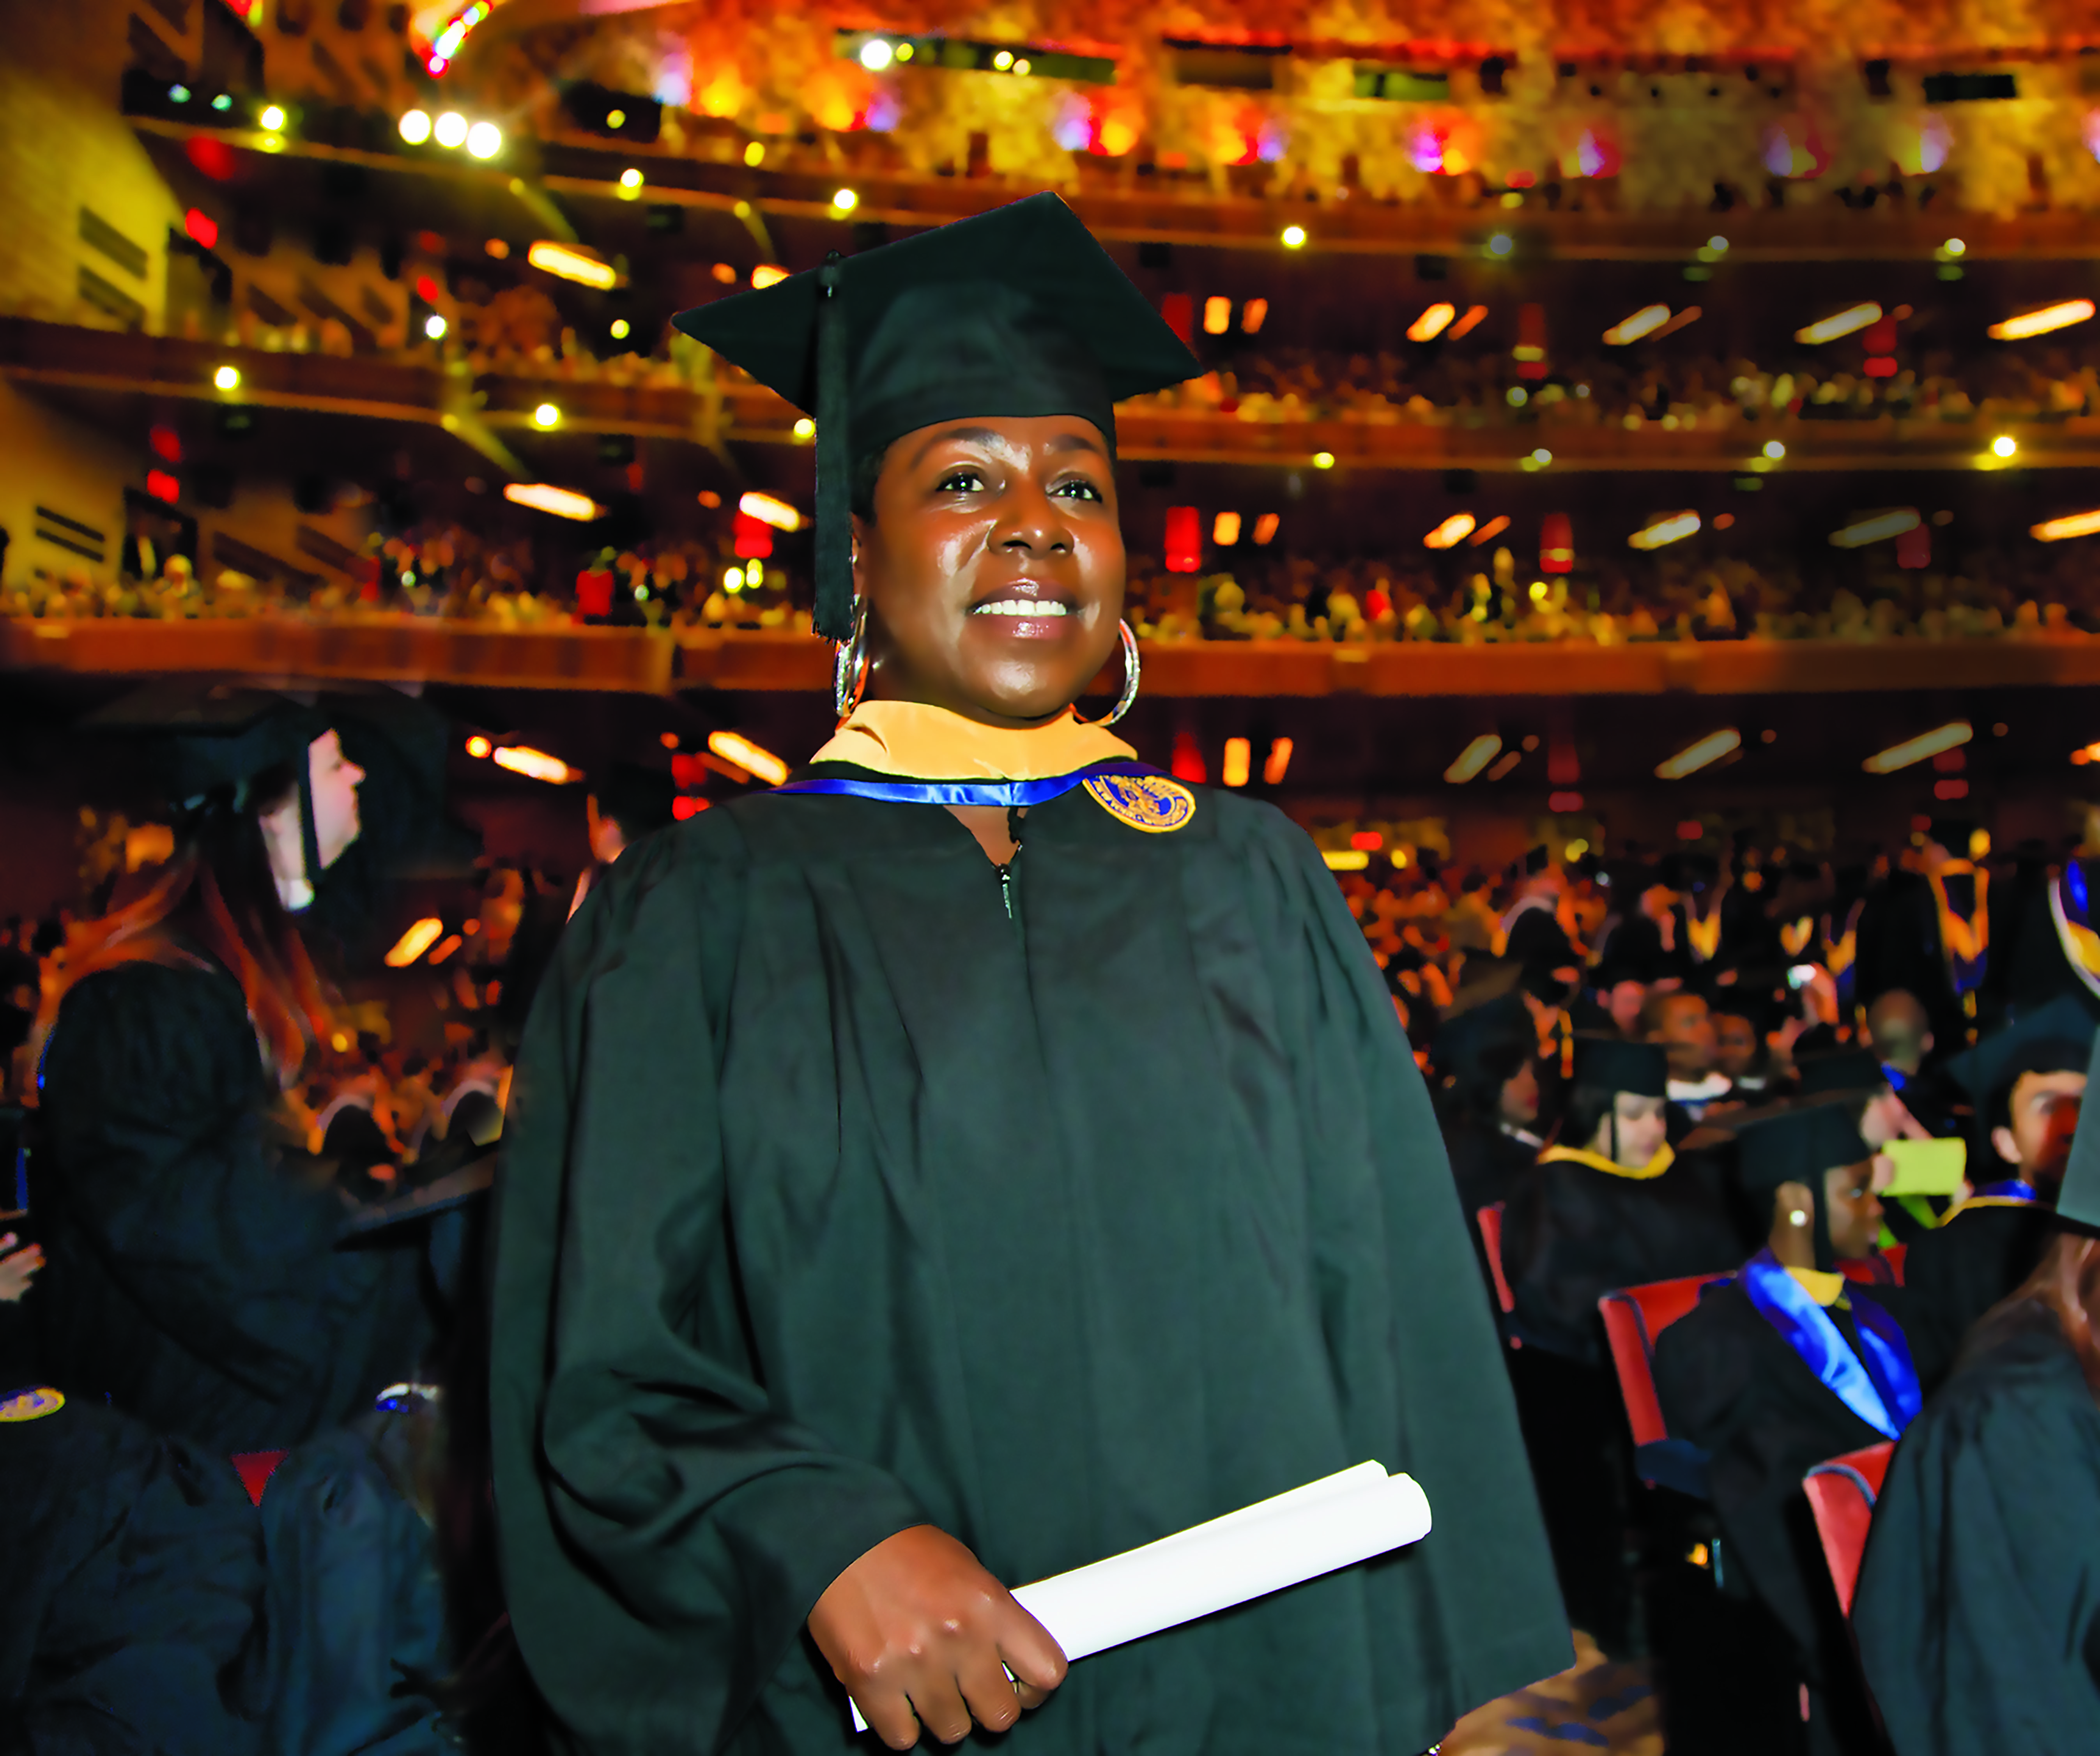 Shanika Cherry graduated from the iPace online program last year with a BS in Professional Technology Studies-Computer Forensics.